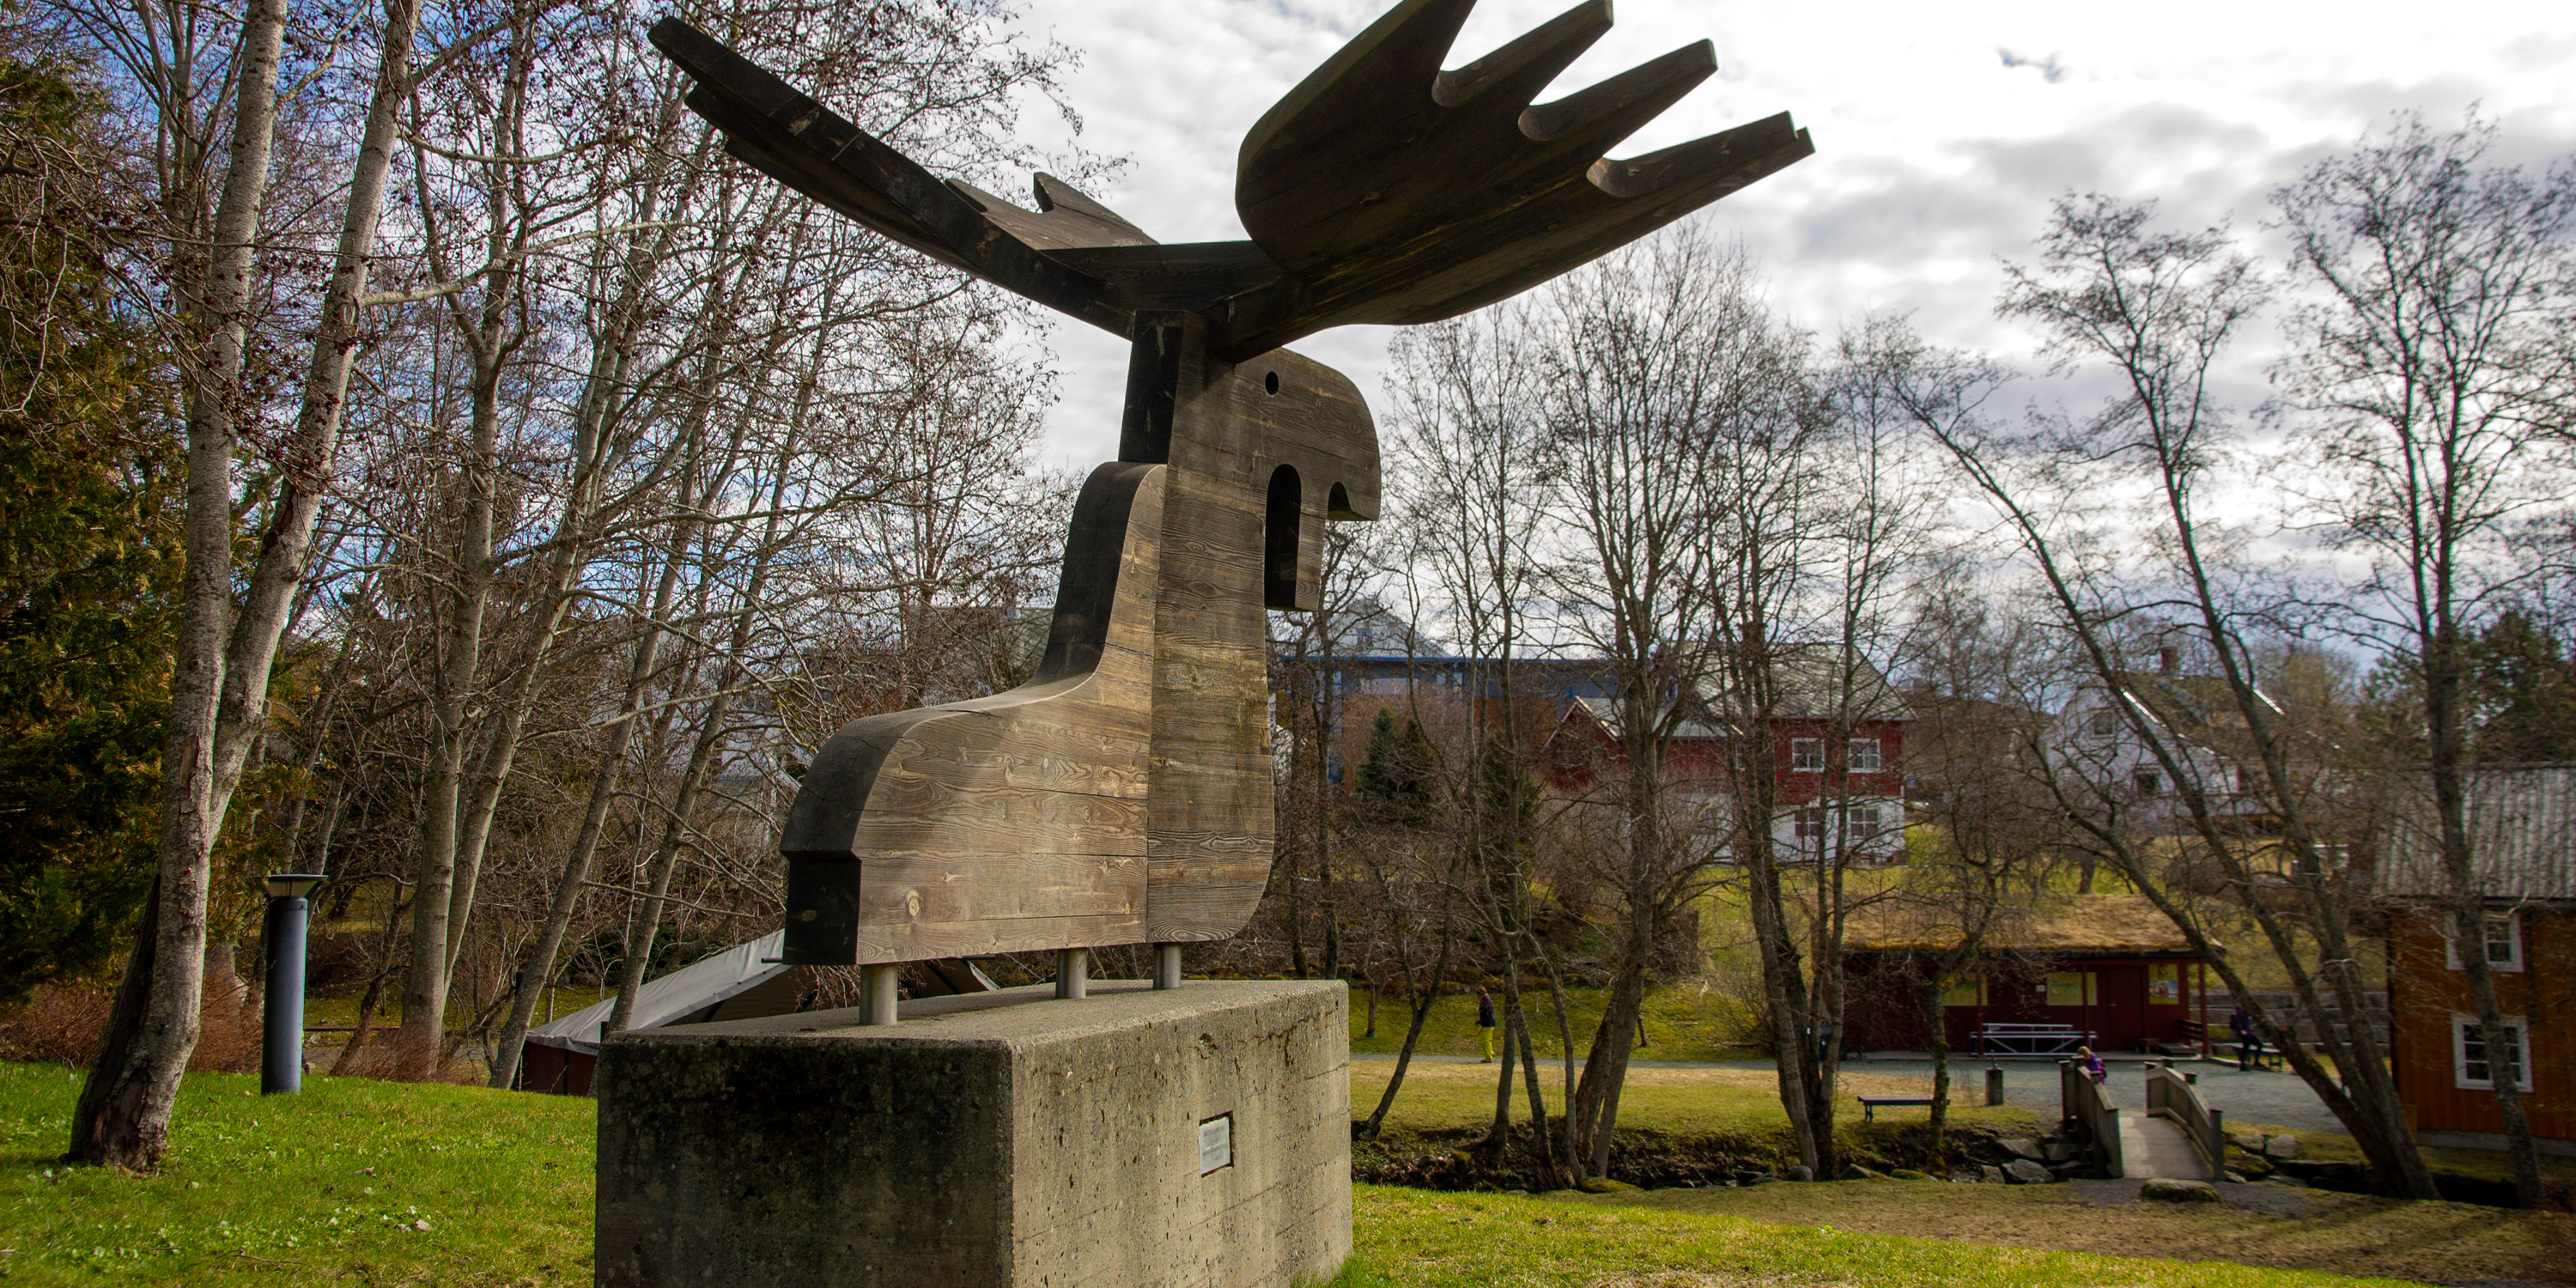 The moose presides over the park at the top of the Amphi. Copyright: André Moore